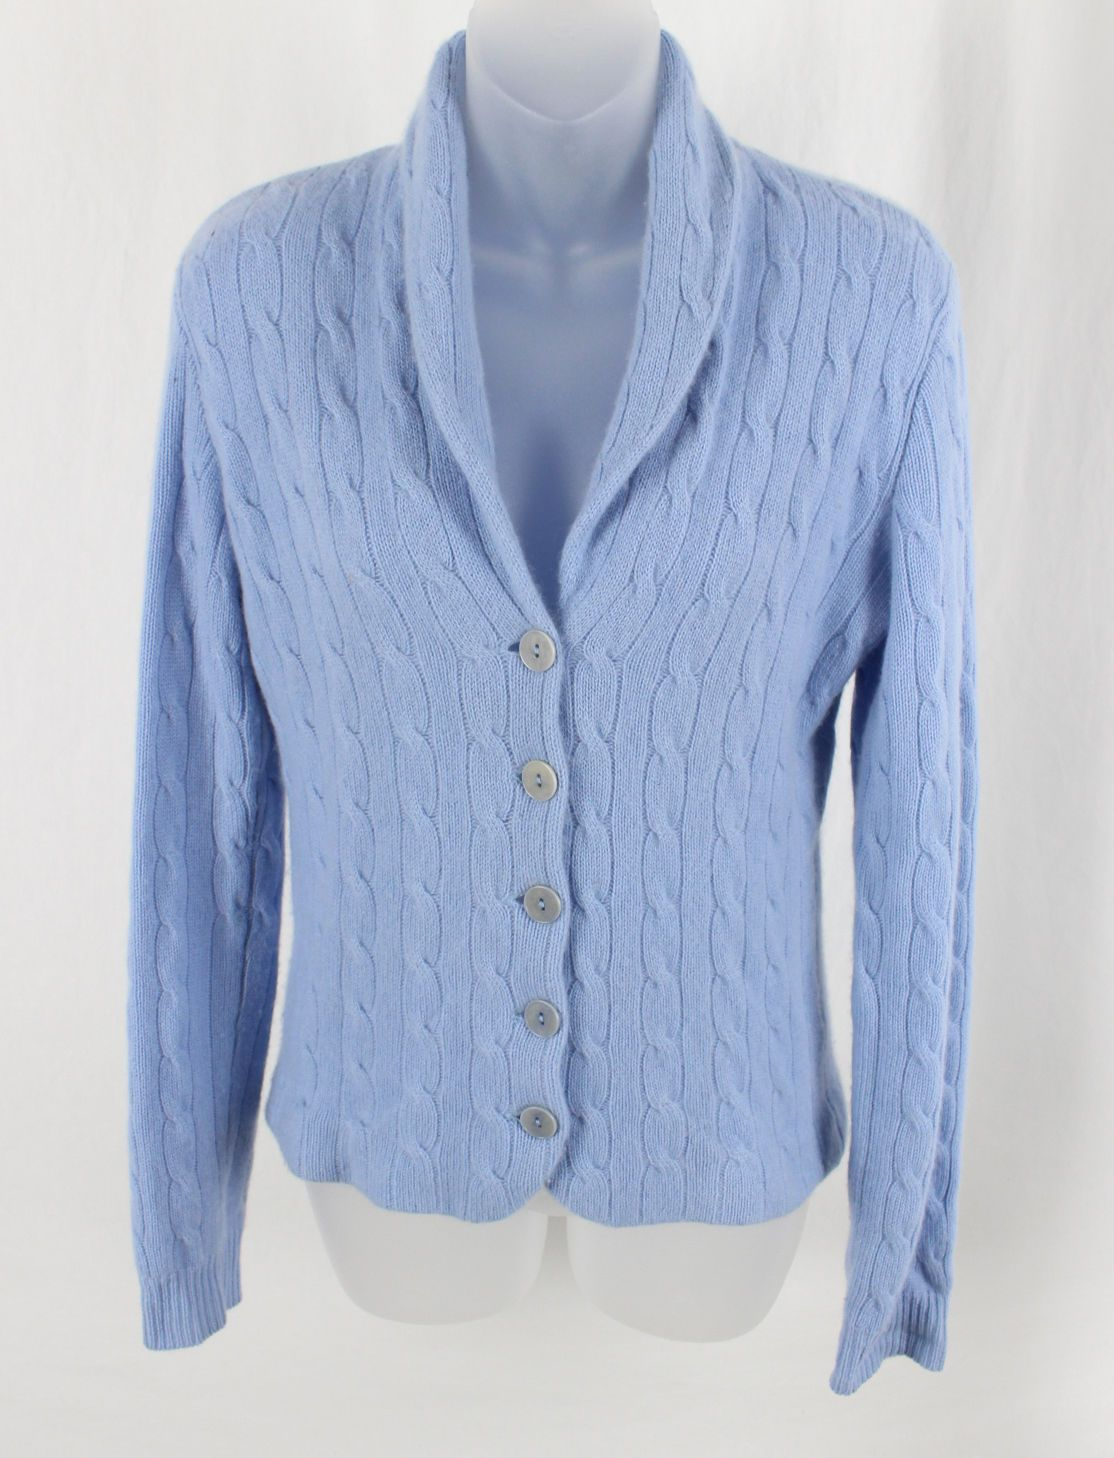 Ralph Lauren Womens Light Blue Cable Knit Cashmere Sweater ...